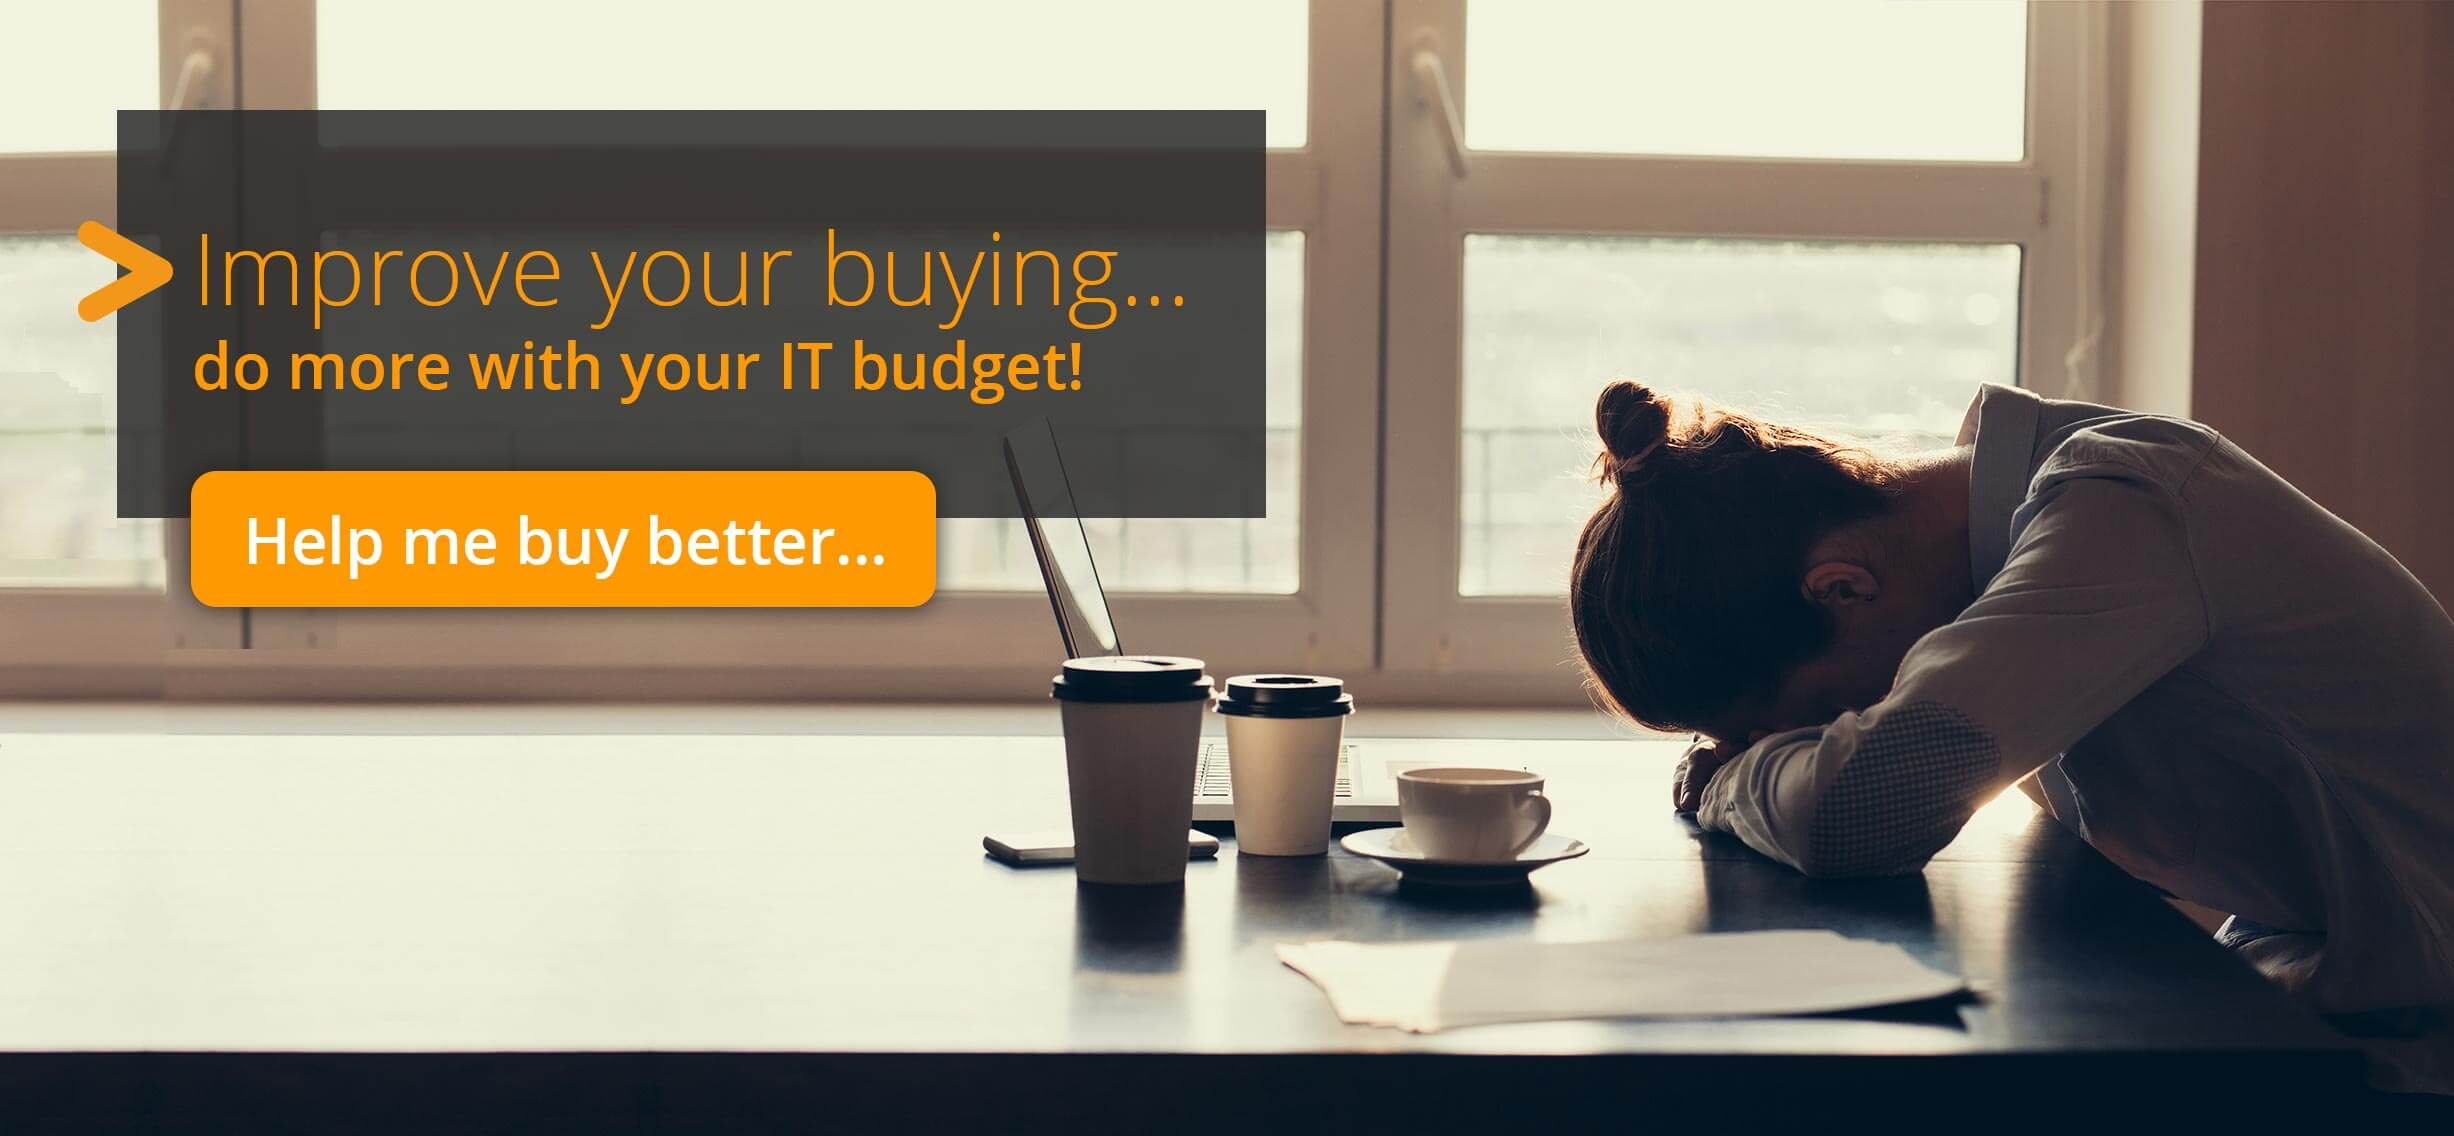 Improve your buying... do more with your IT budget!